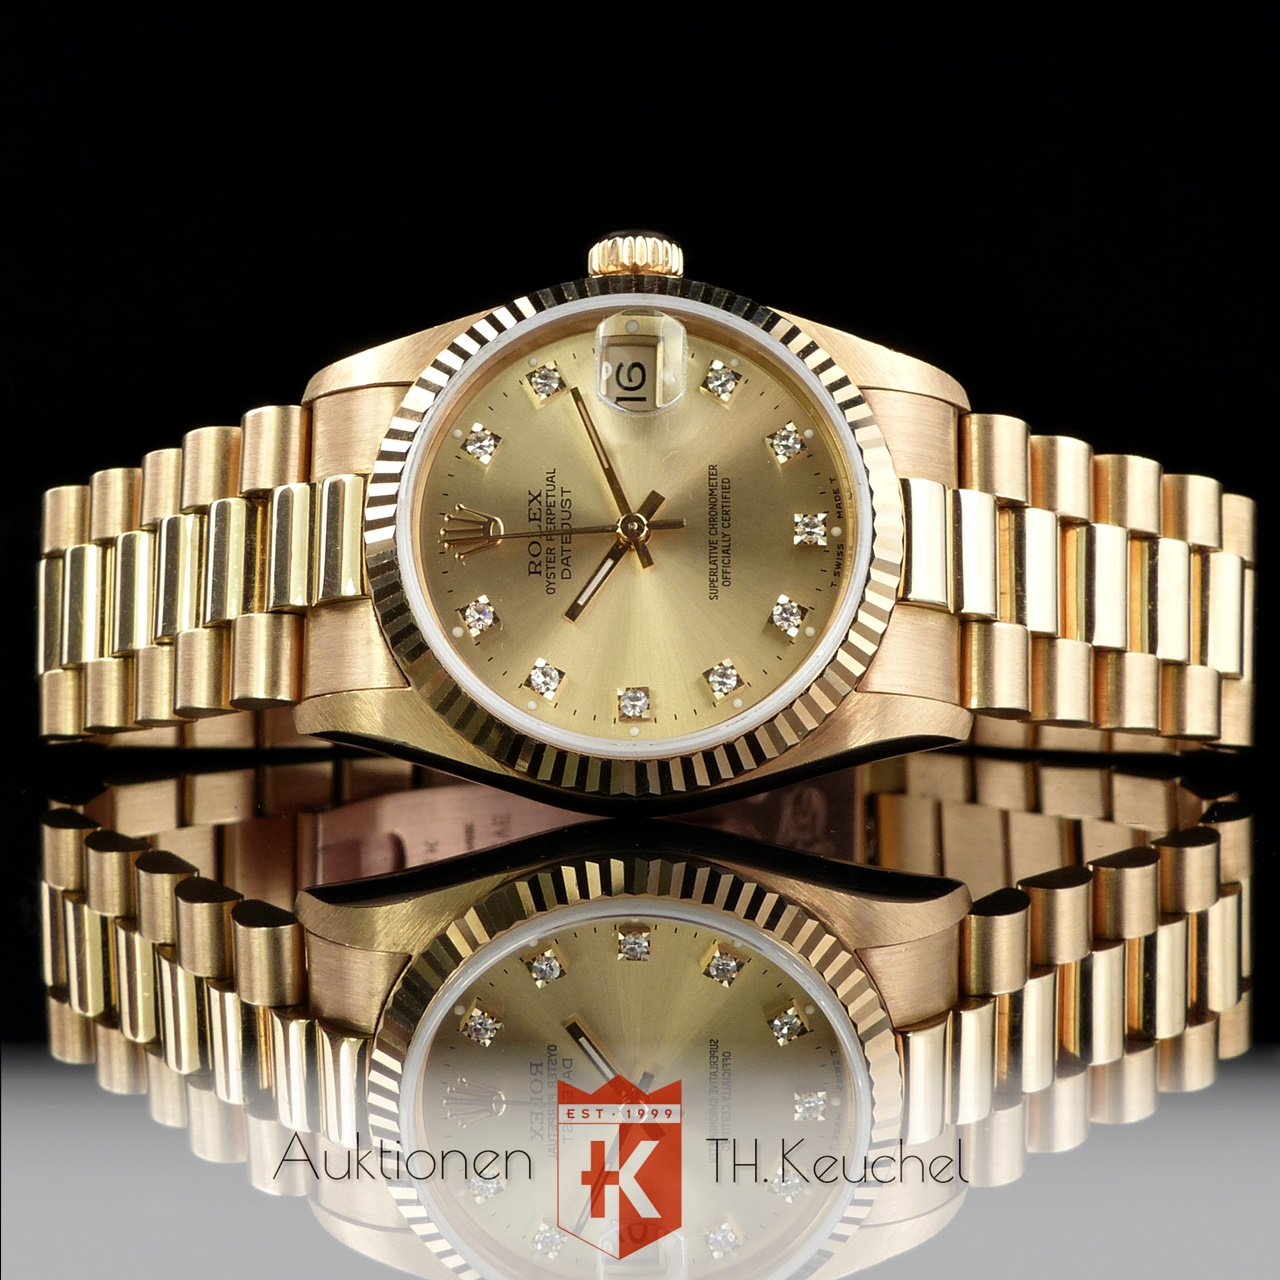 Rolex Oyster Perpetual Datejust Diamond Dial Gold 18k 31 Mm Ref